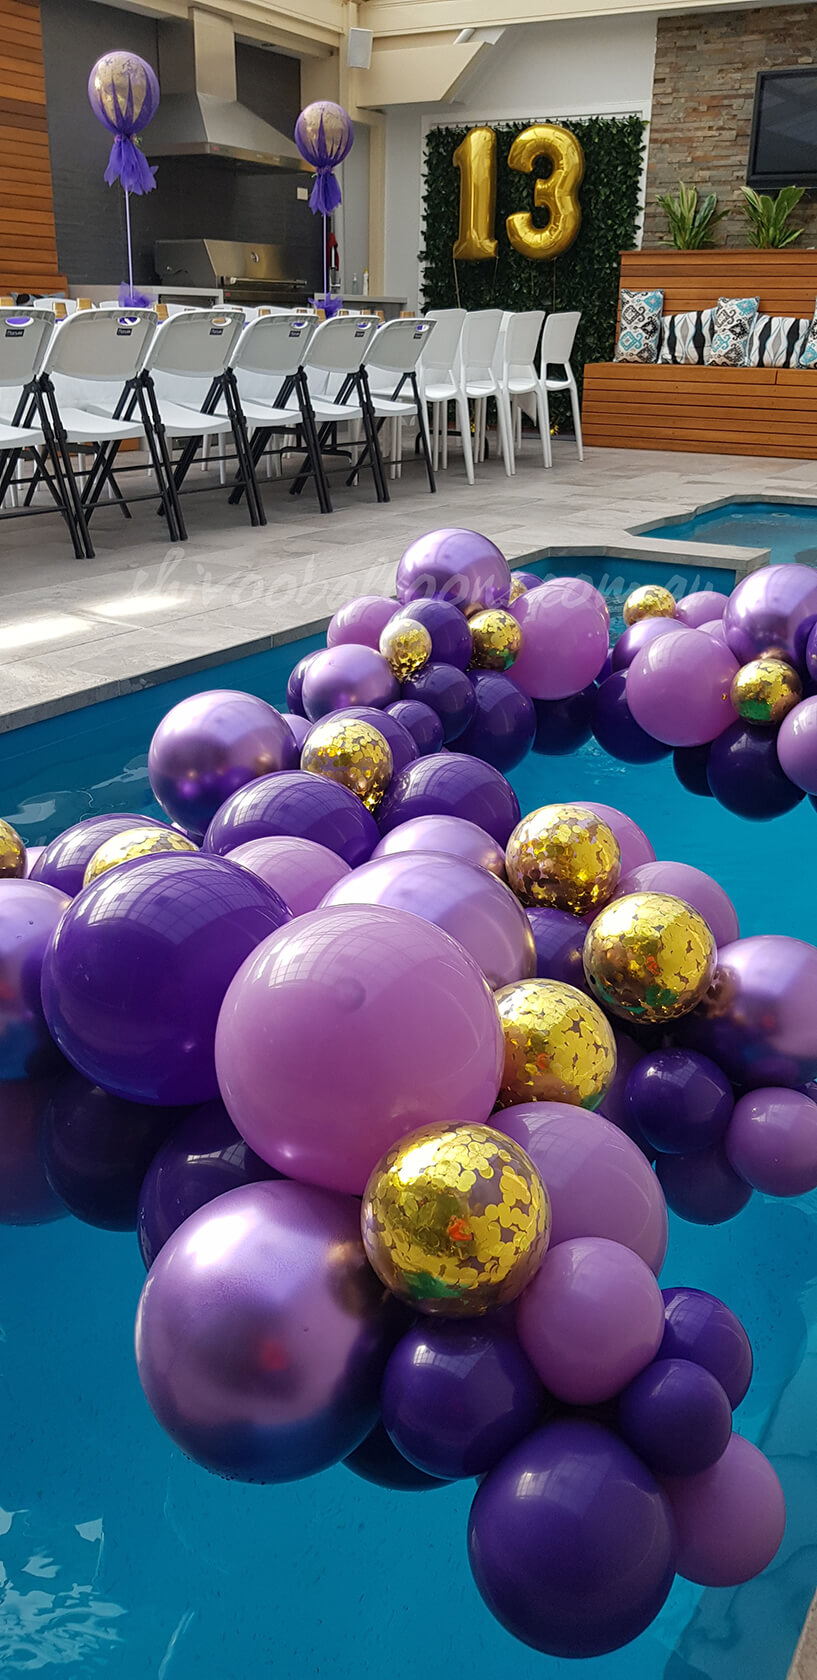 See Our Events! - image CE-49 on https://shivooballoons.com.au